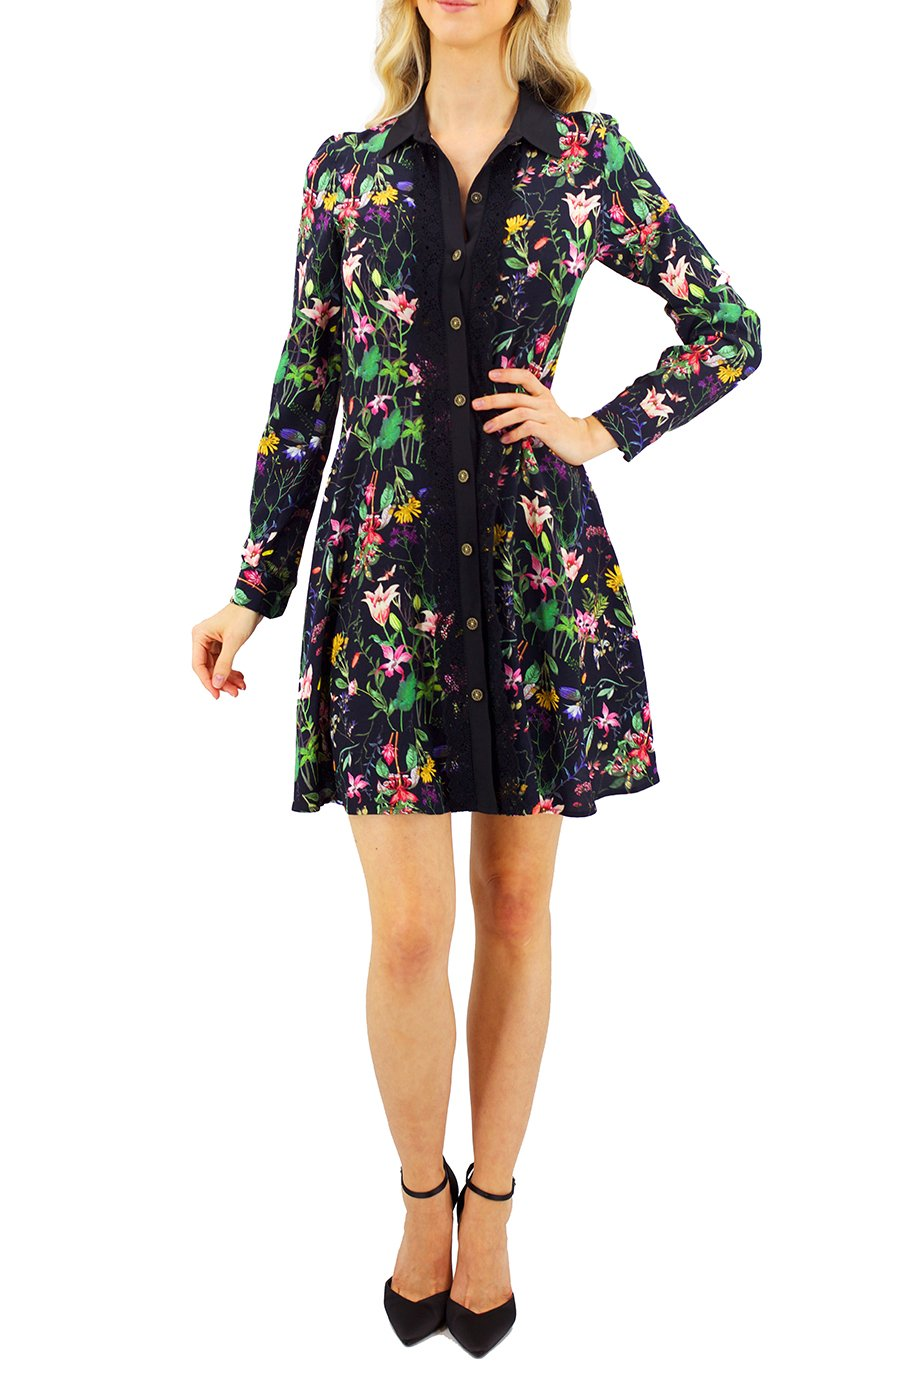 The Kooples Floral Long Sleeves Button Down Dress